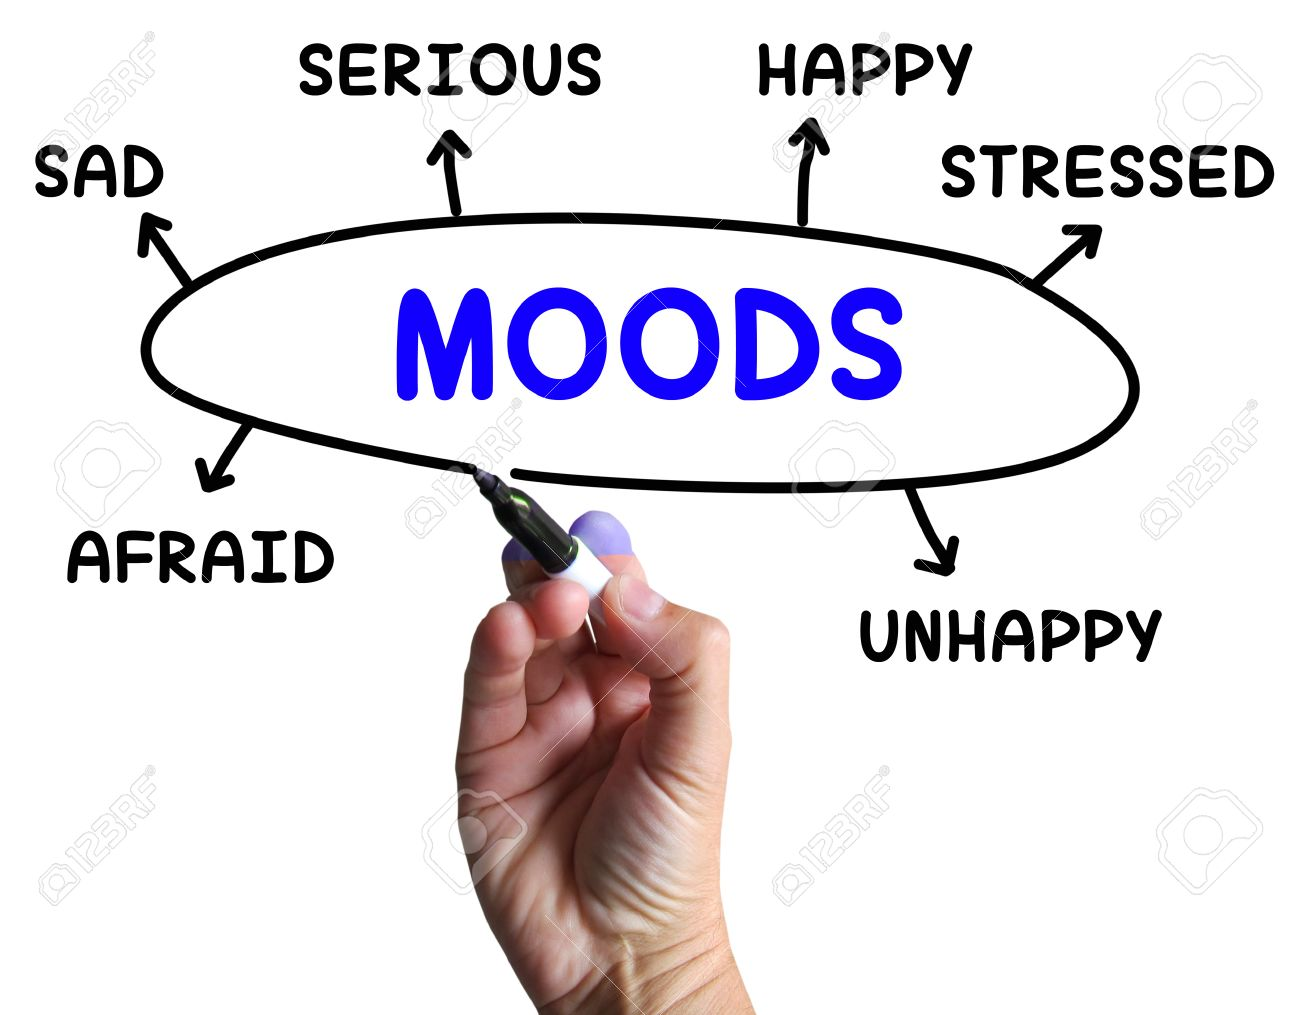 moods diagram meaning emotions and state of mind stock photo    stock photo   moods diagram meaning emotions and state of mind